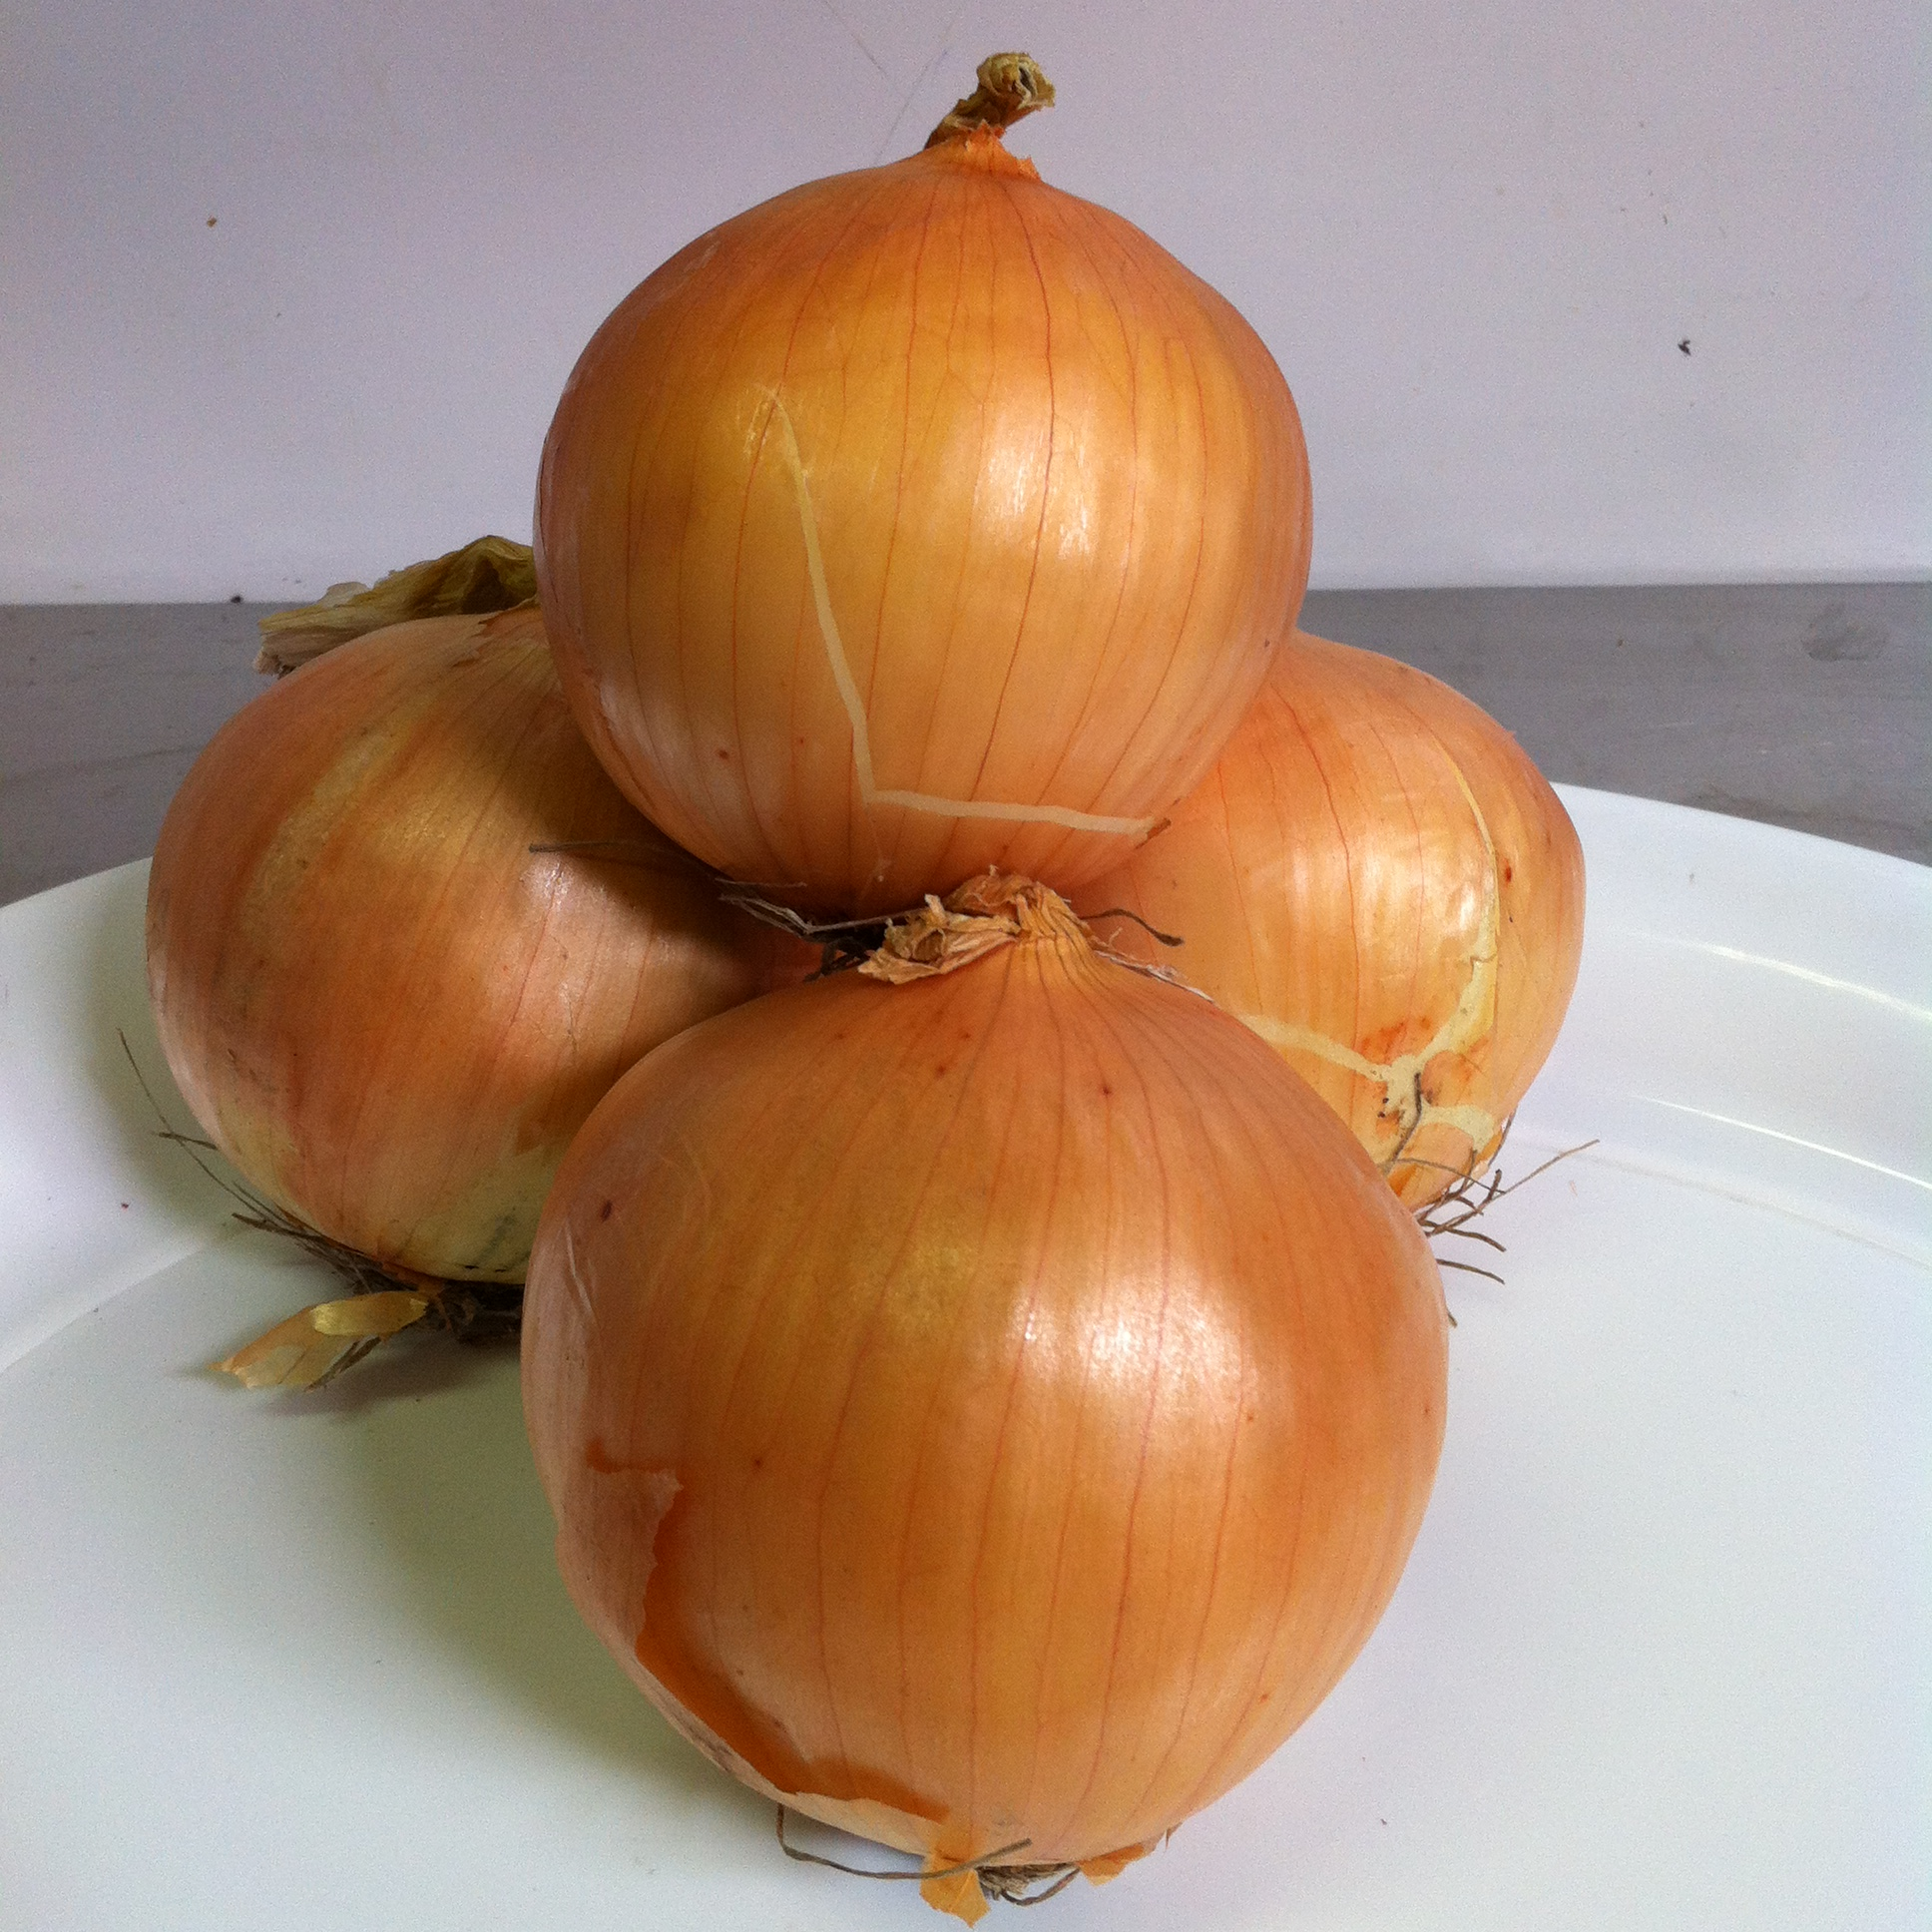 Brown Onion kg